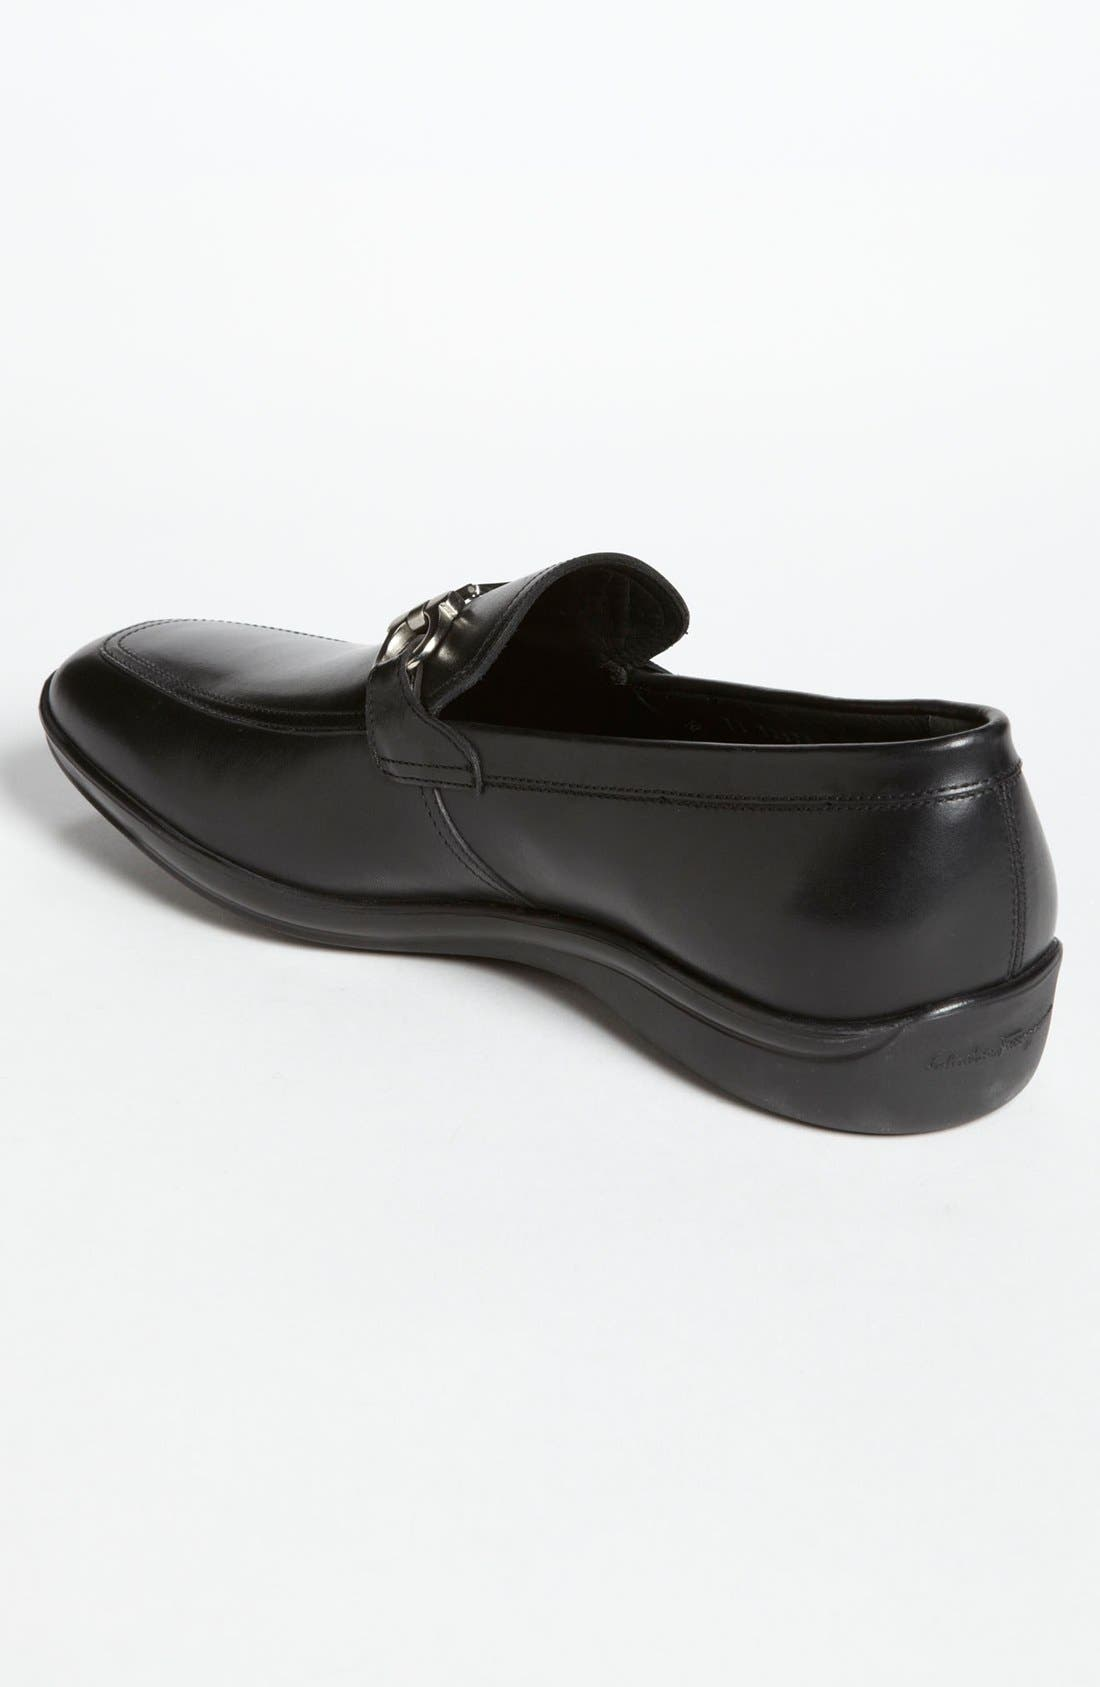 Alternate Image 2  - Salvatore Ferragamo 'Simply' Bit Loafer